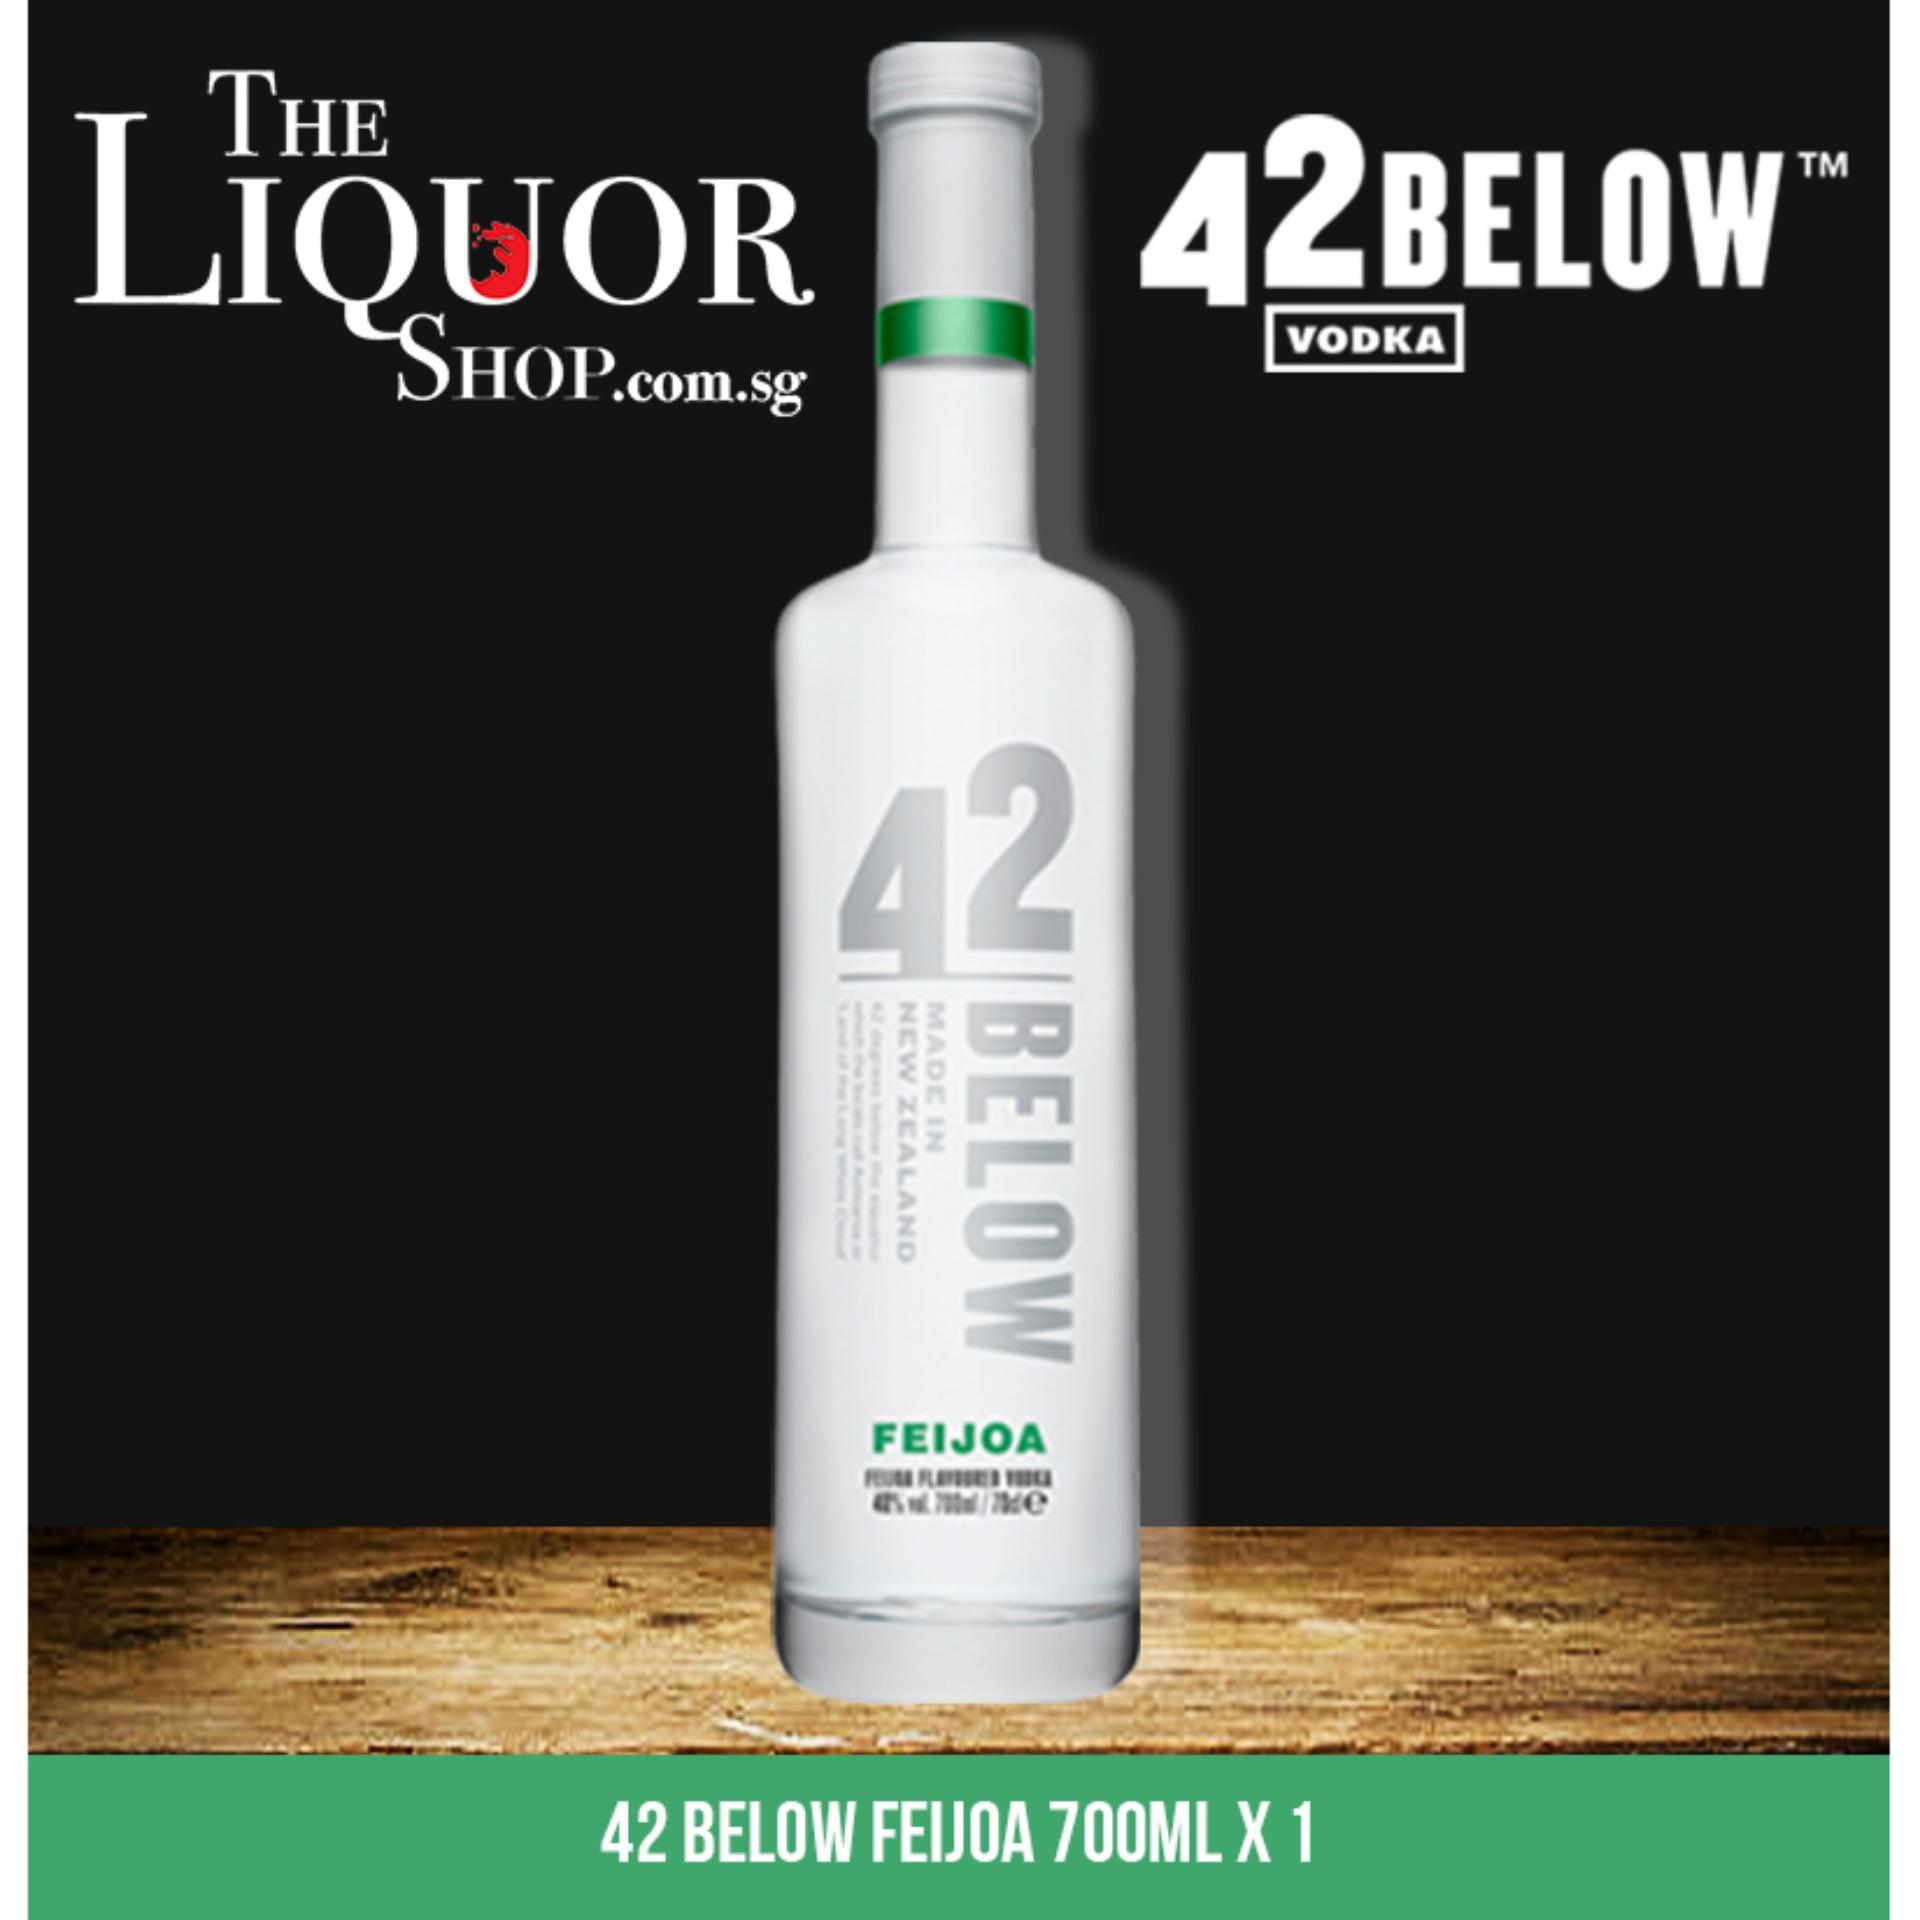 42 Below Feijoa 700ml X 1 By The Liquor Shop.